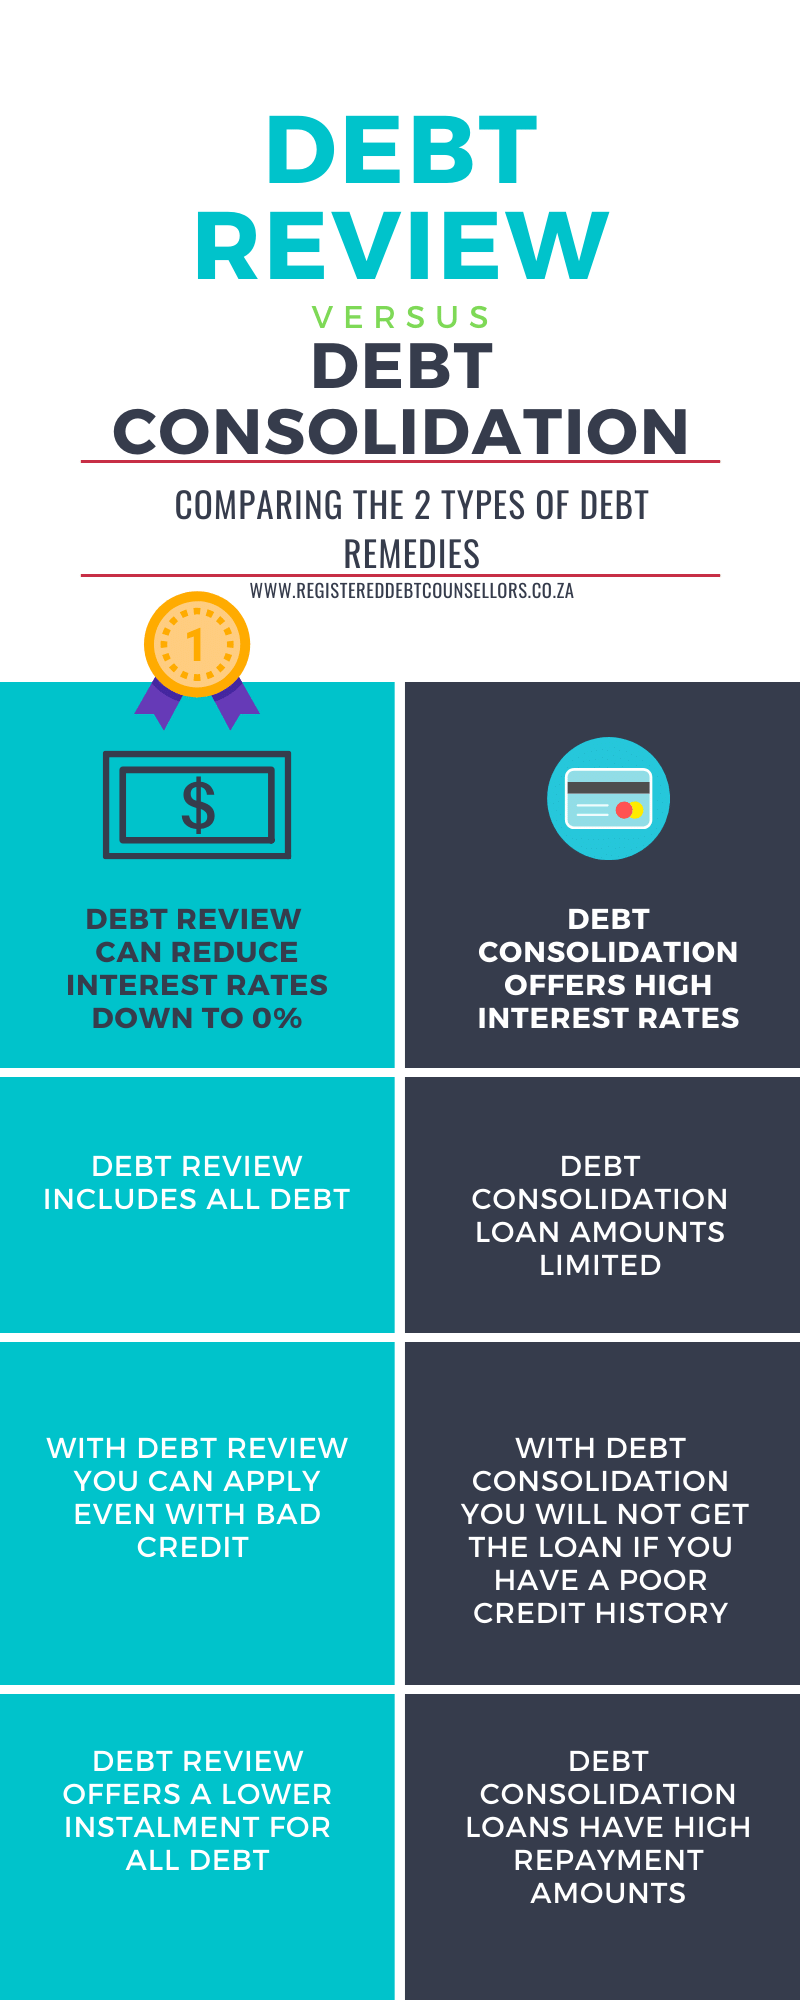 debt-review-vs-debt-consolidation-infographic